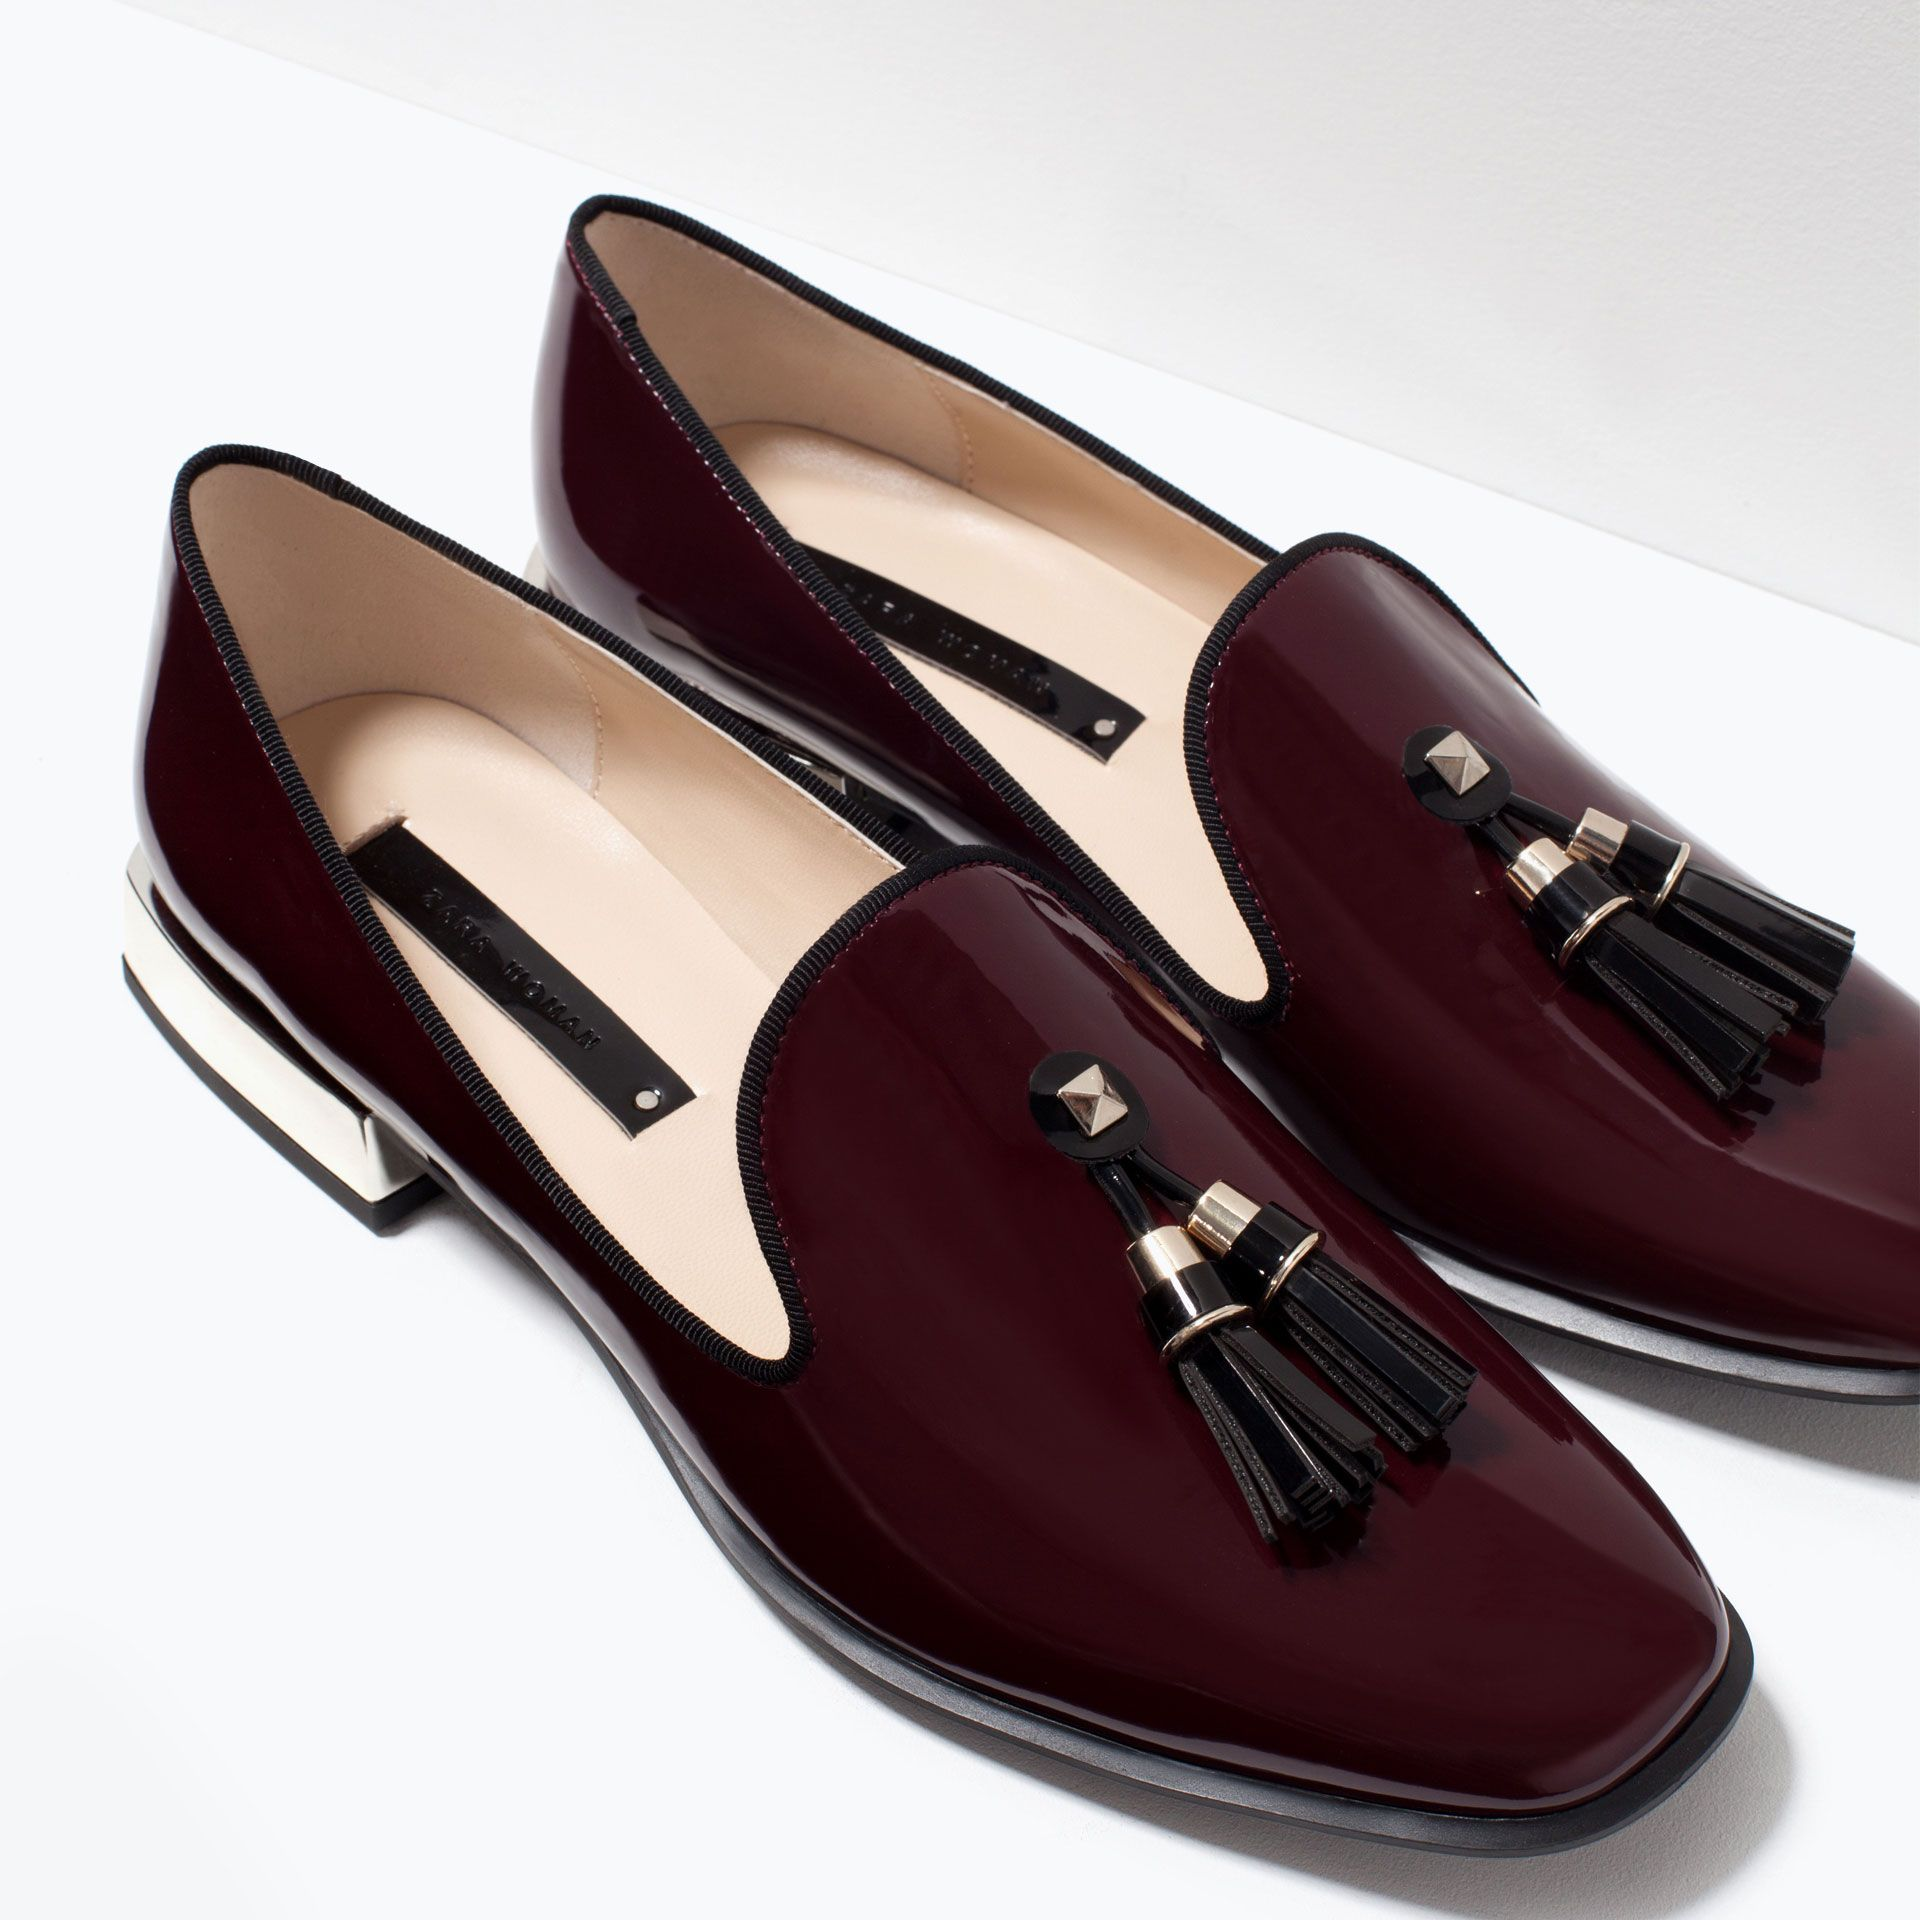 Glossy flat shoes - View all - Shoes - WOMAN  be8f93e5e3c5